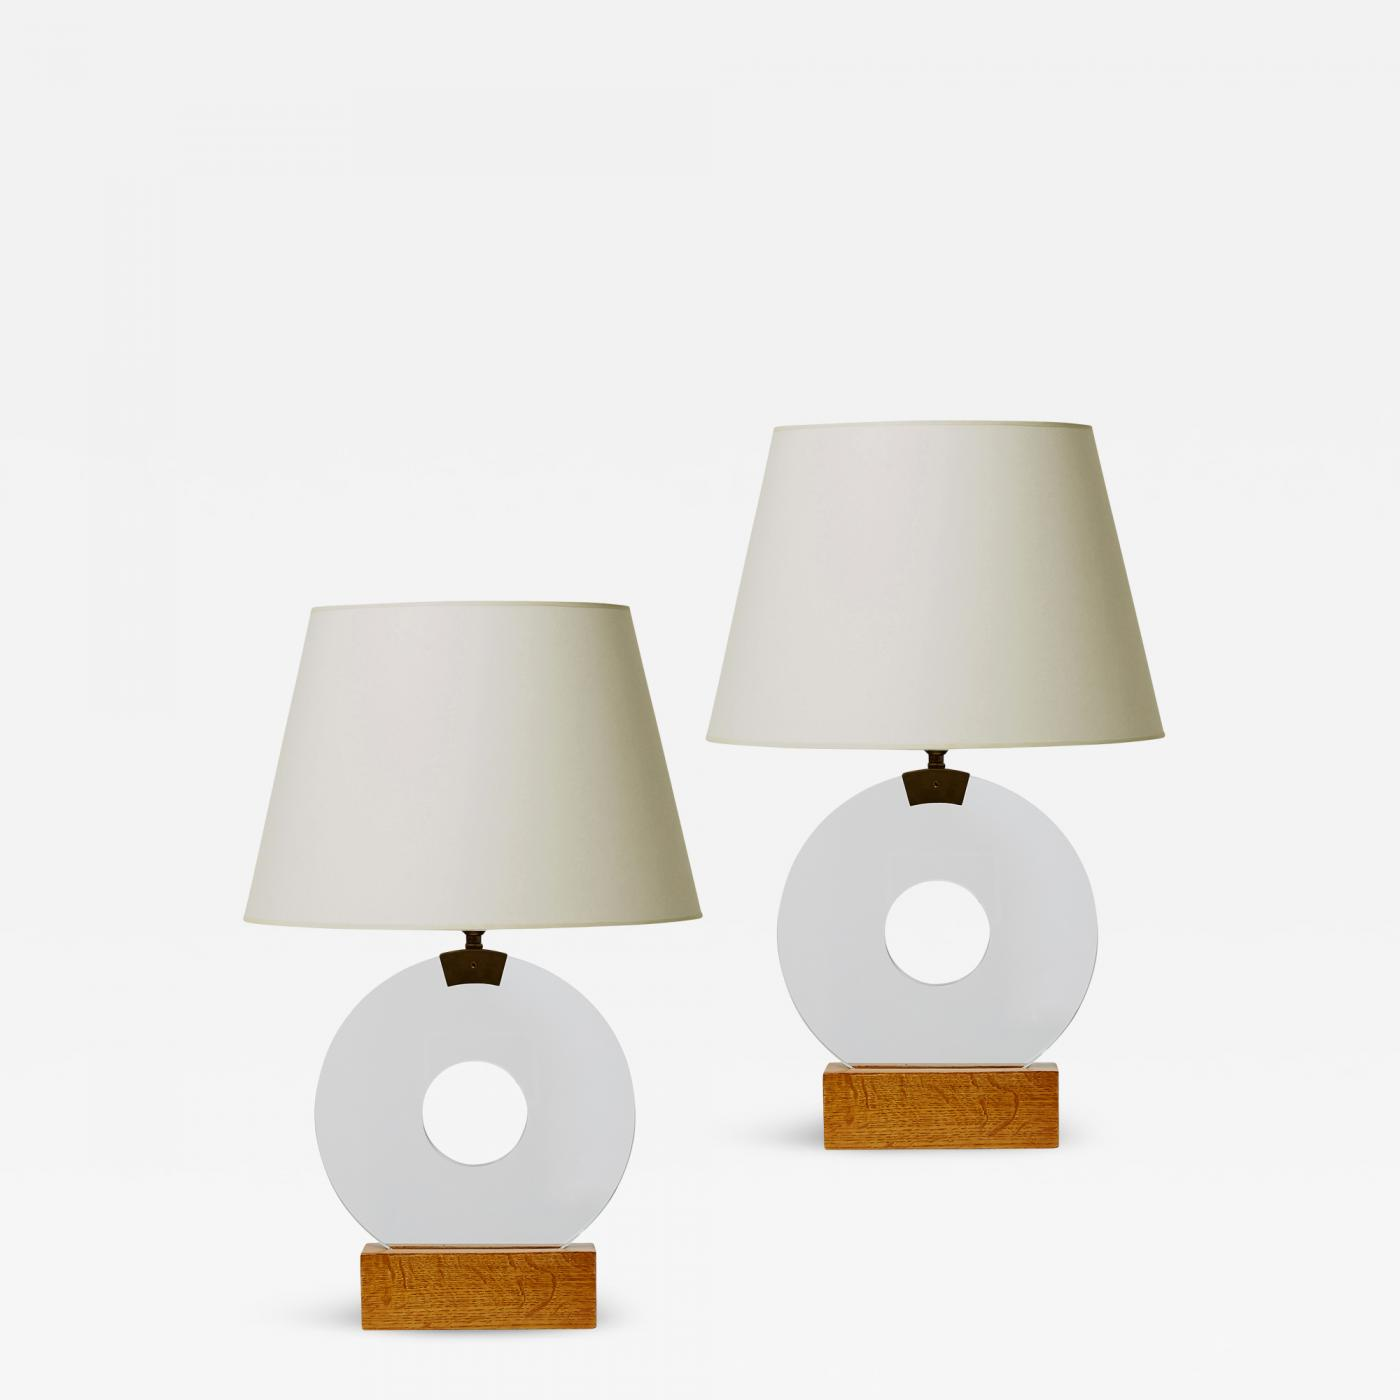 Jean michel frank pair of disk table lamps in glass and oak by listings furniture lighting table lamps aloadofball Gallery